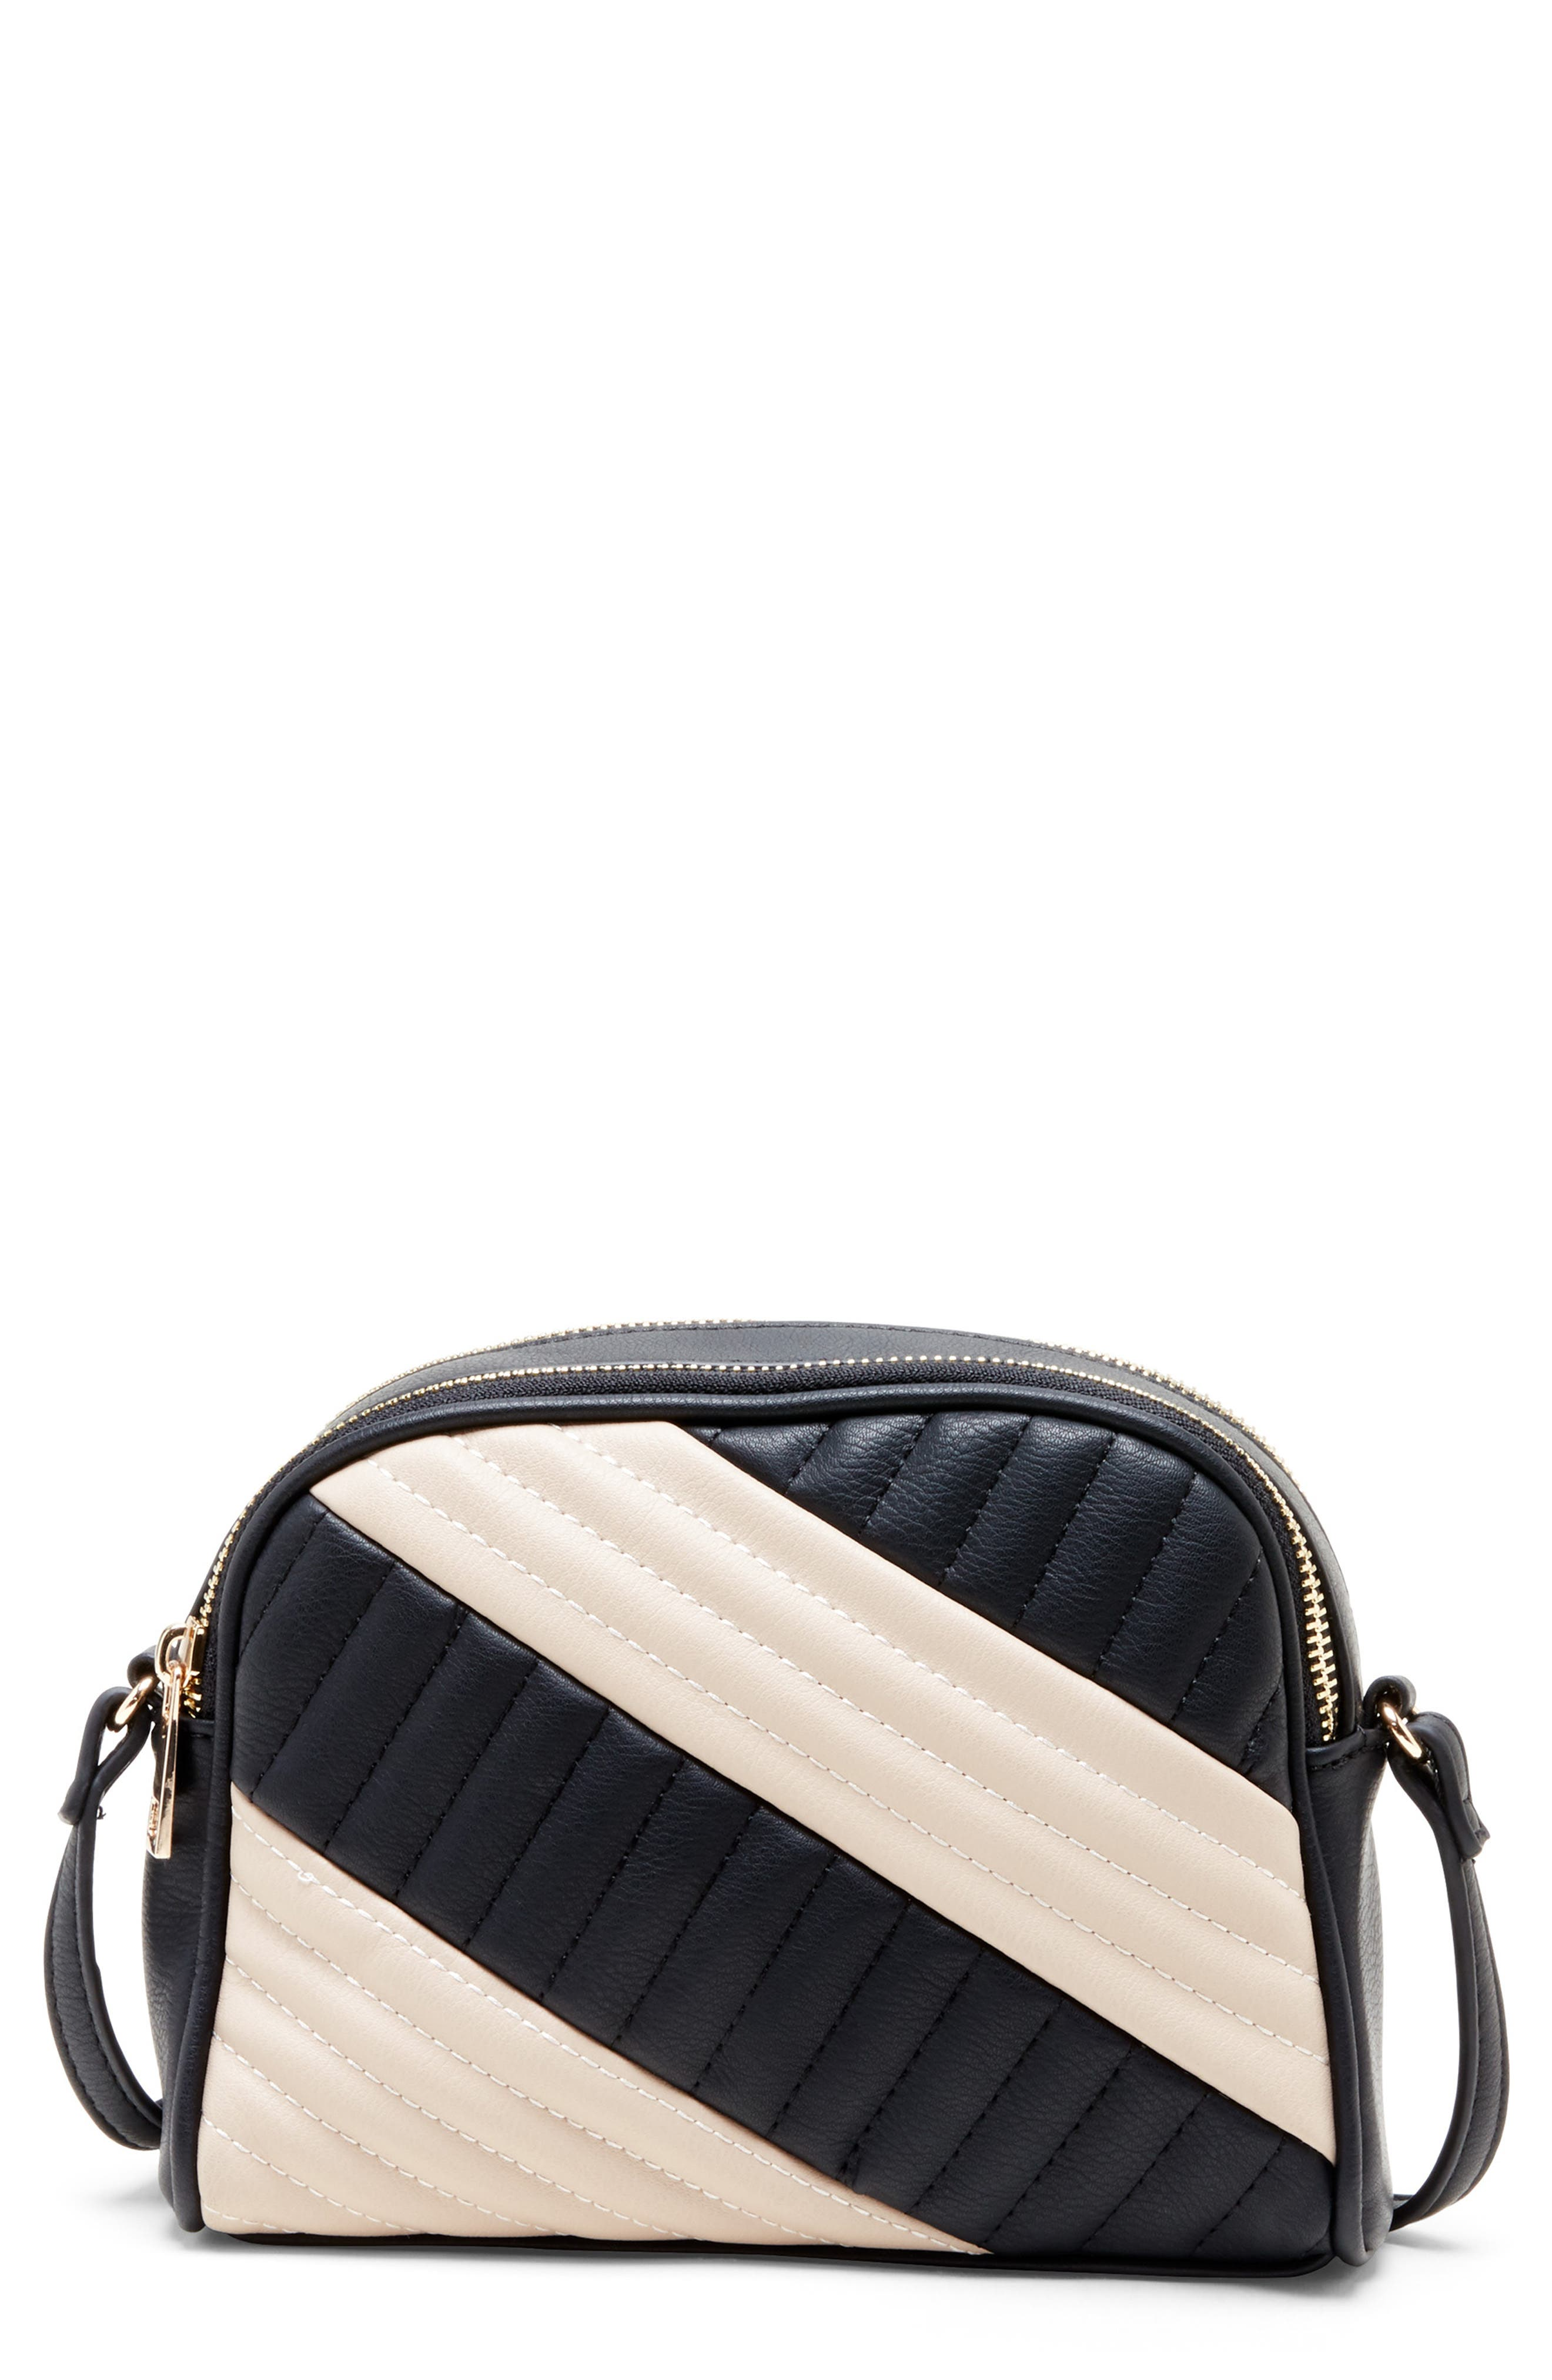 Linza Faux Leather Crossbody Bag,                         Main,                         color, BLACK/ CREAM